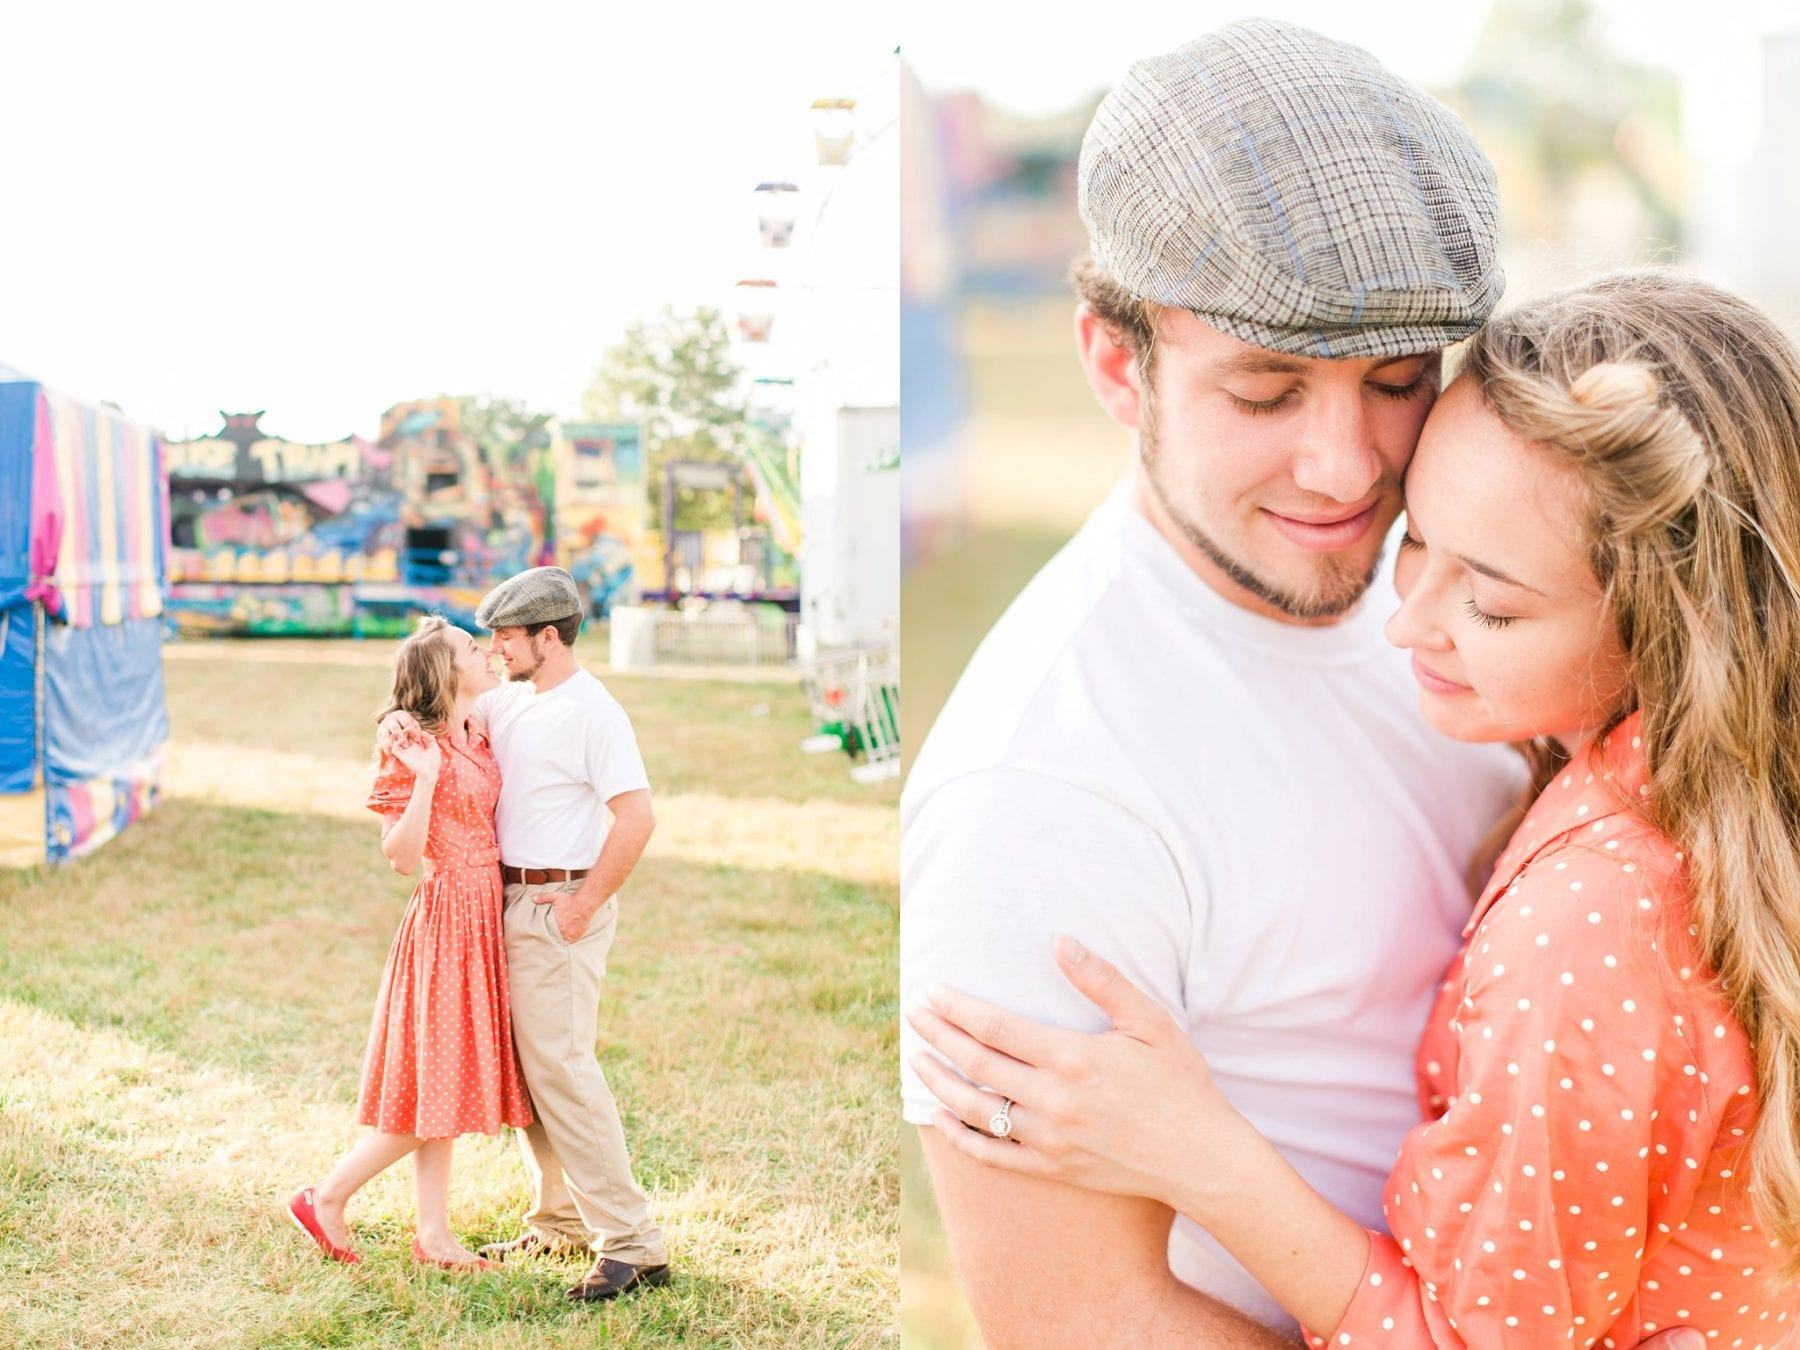 County Fair Engagement Photos Virginia Wedding Photographer Megan Kelsey Photography Samantha & Charles-149.JPG